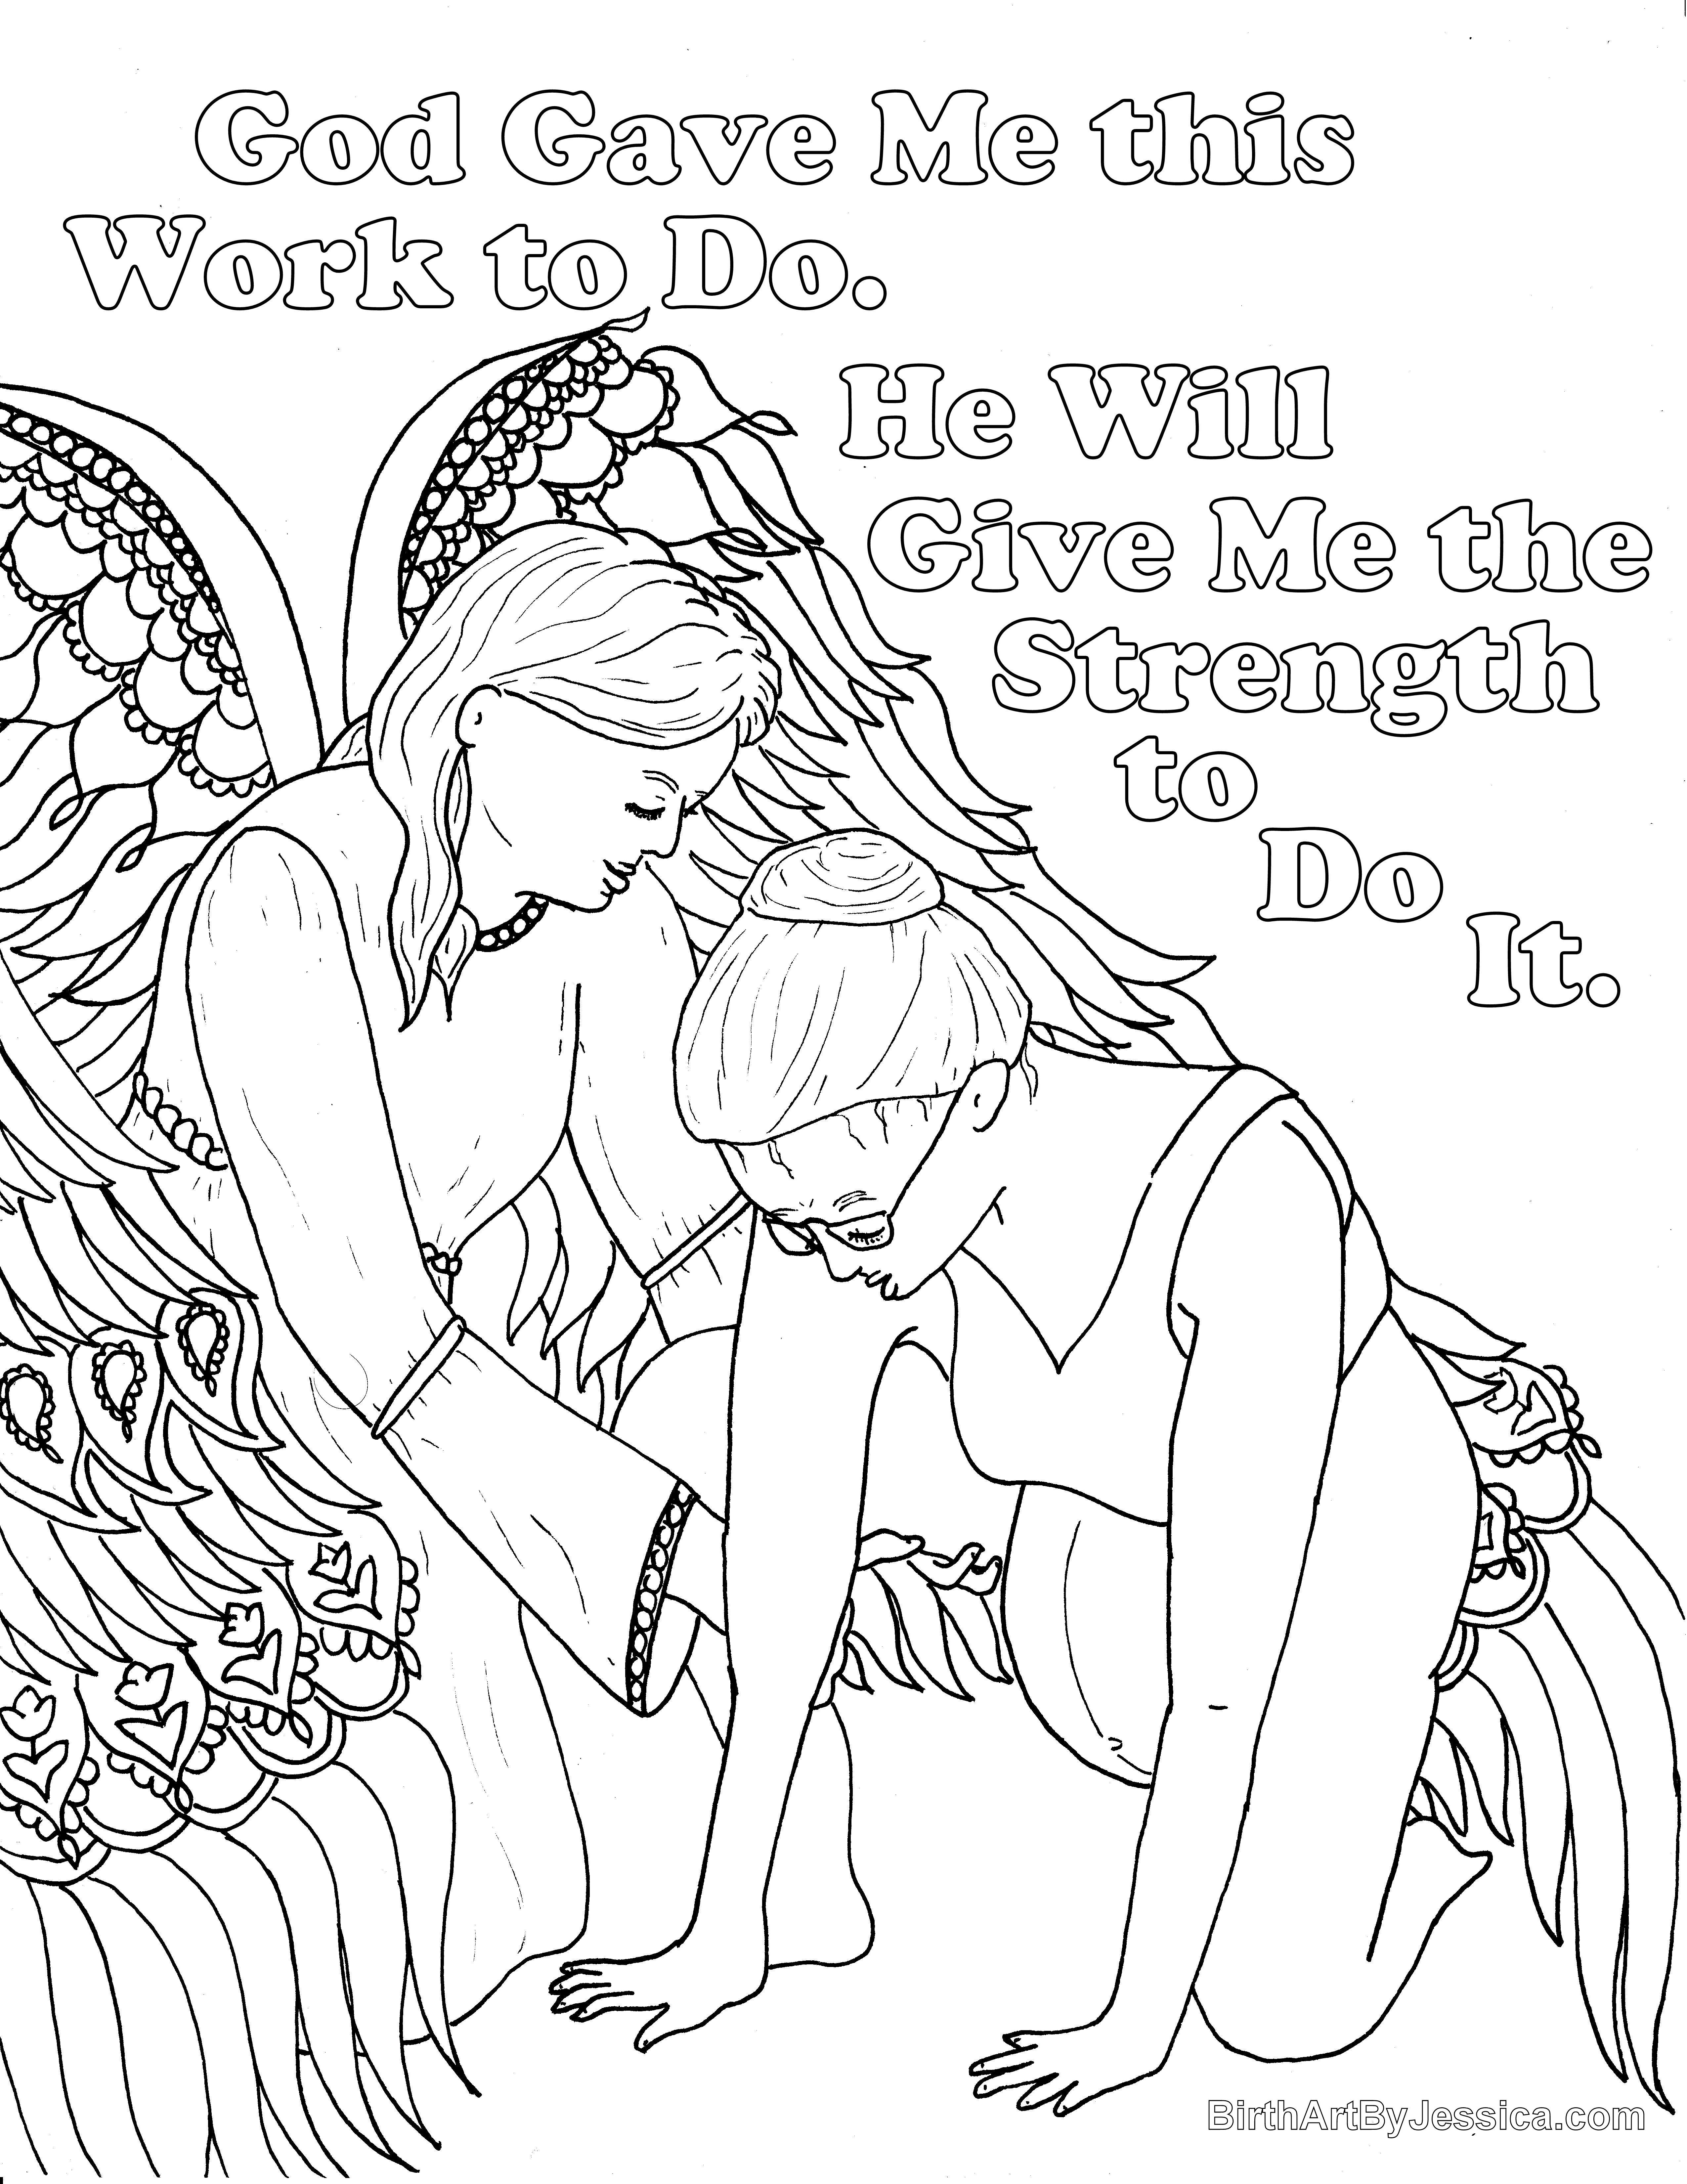 Birth Affirmation Coloring Page Free Printable God Will Give Me Strength Mandalas